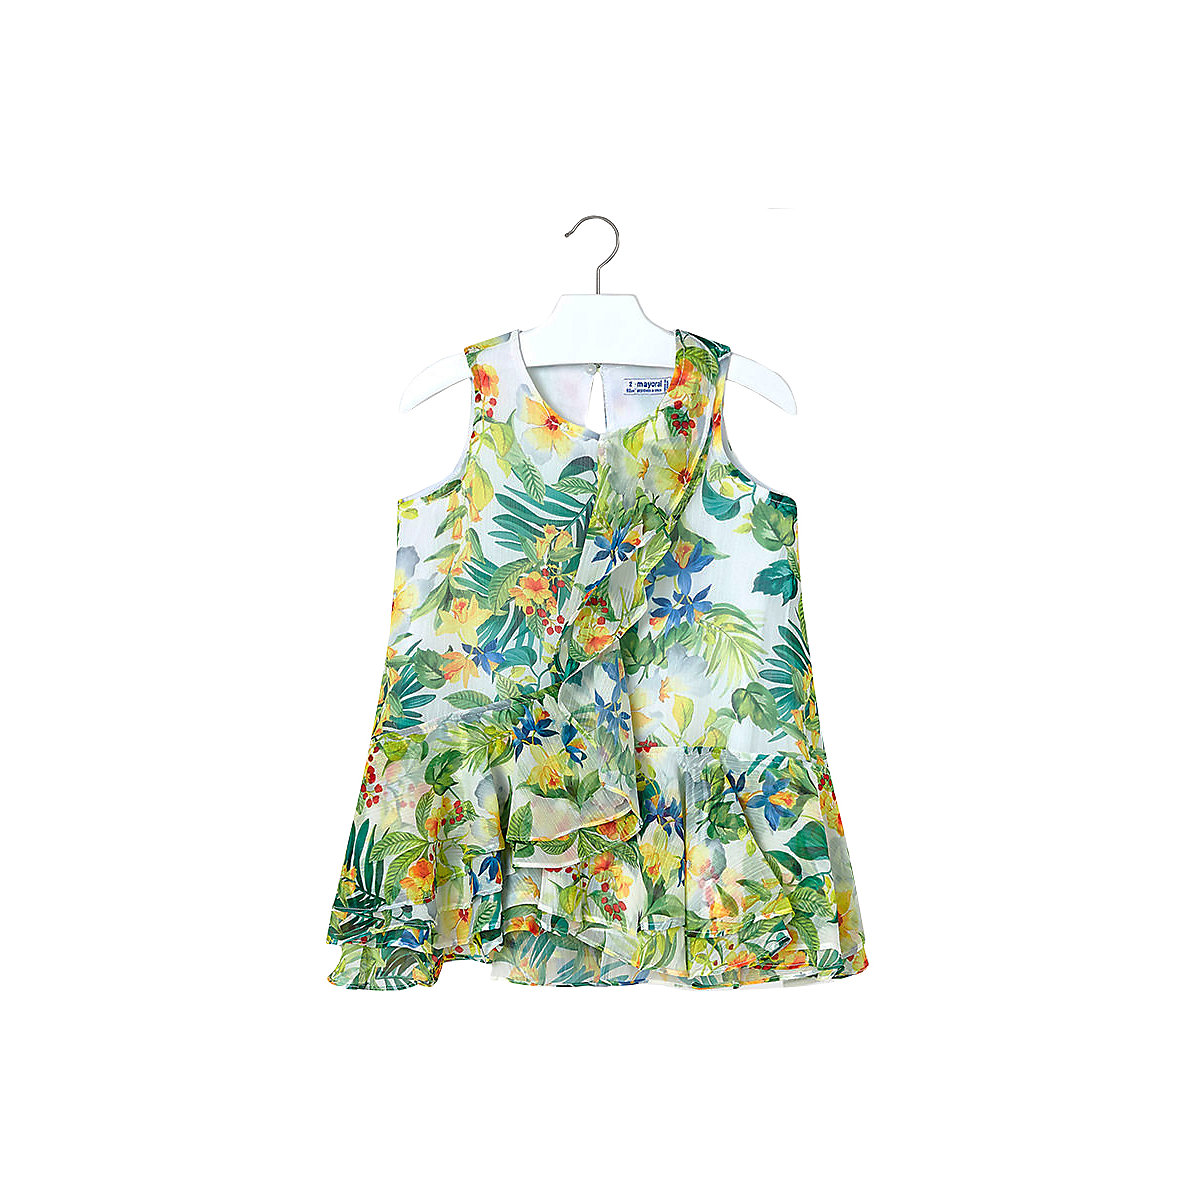 MAYORAL Dresses 10686762 Girl Children fitted pleated skirt Yellow Polyester Casual Floral Knee-Length Sleeveless Sleeve white tube top and floral print pleated hem skirt co ord